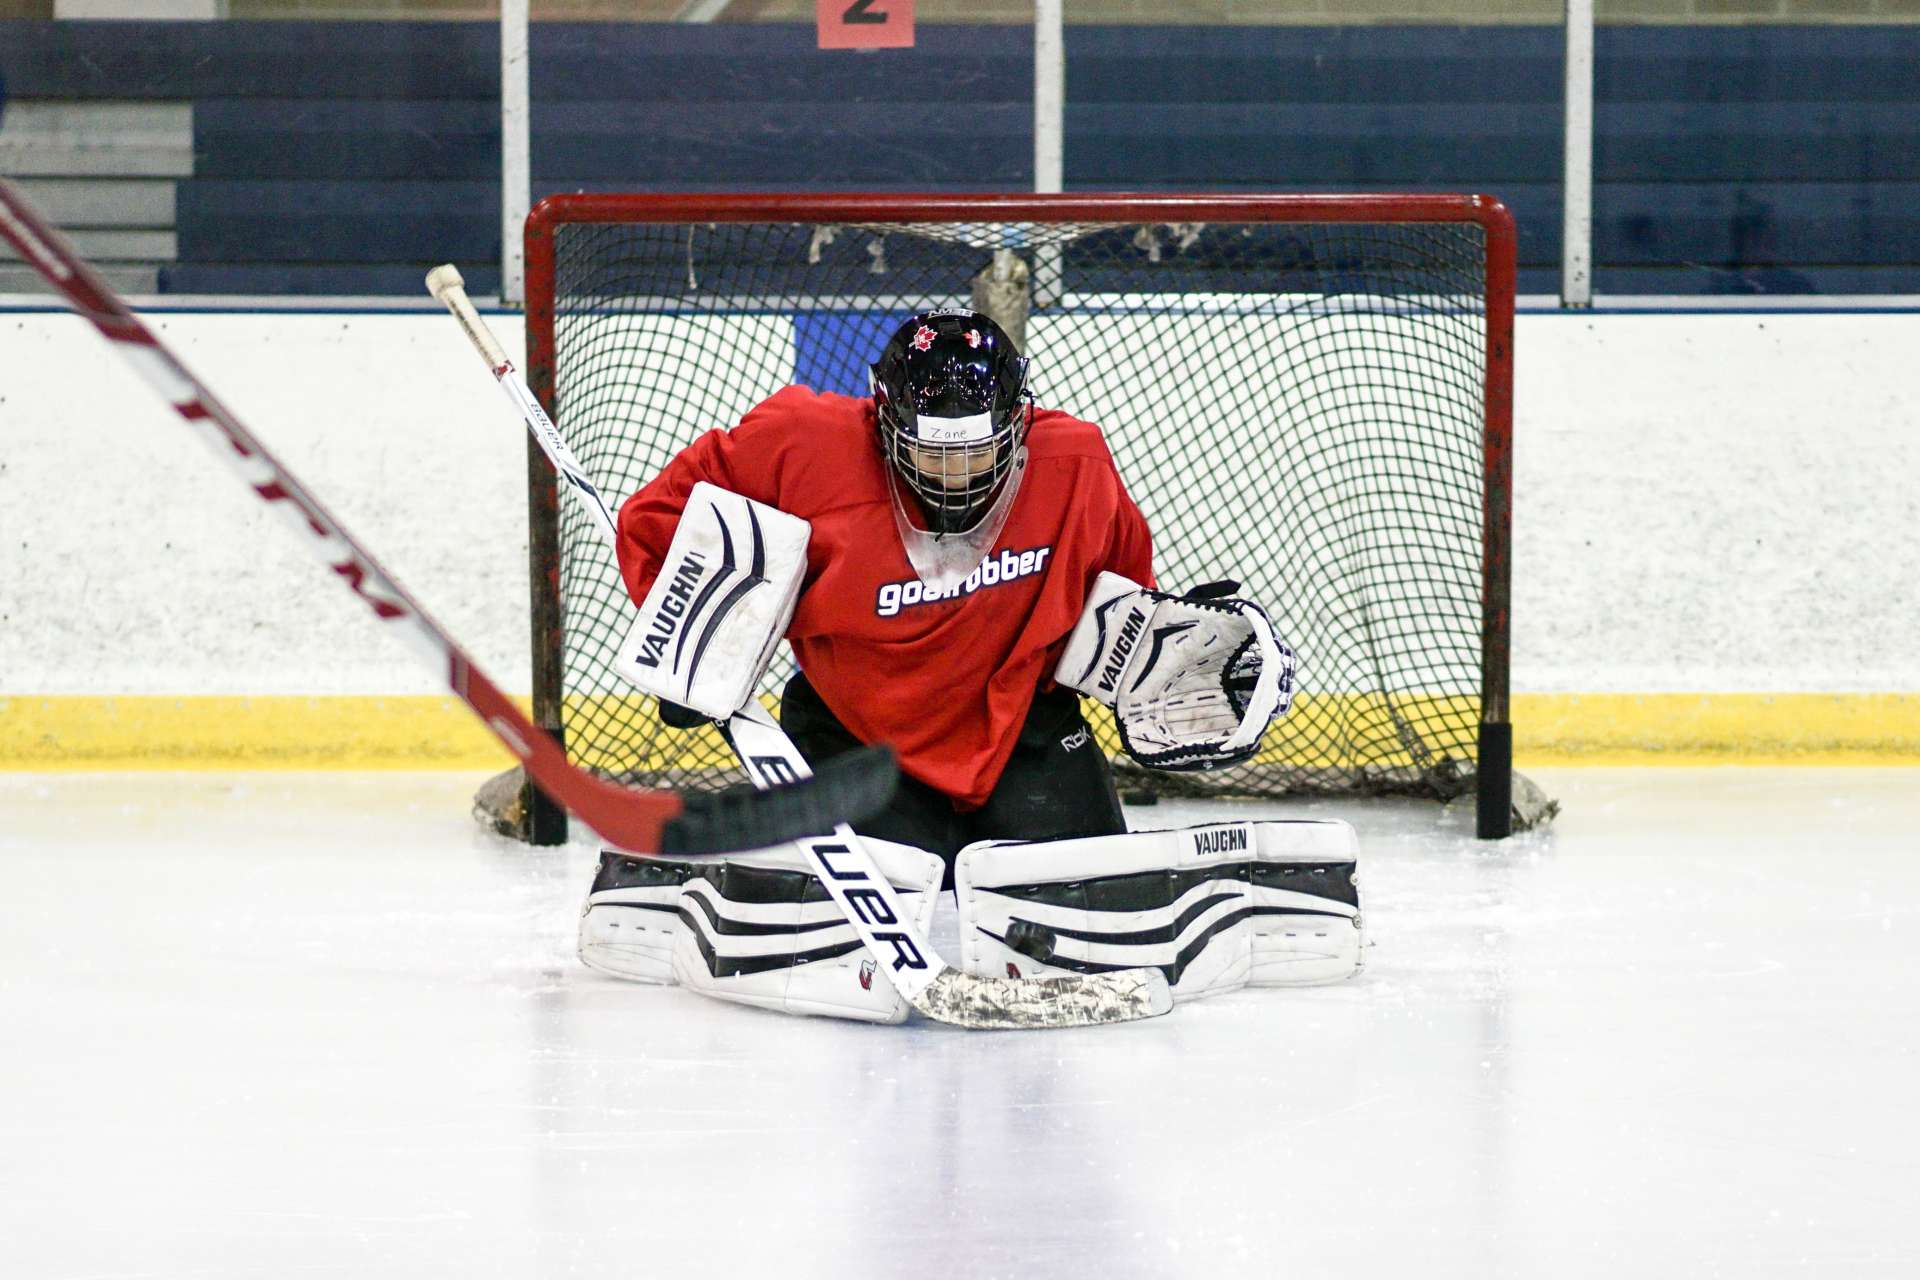 Advanced Goalie Training Program Goalrobber Hockey Schools